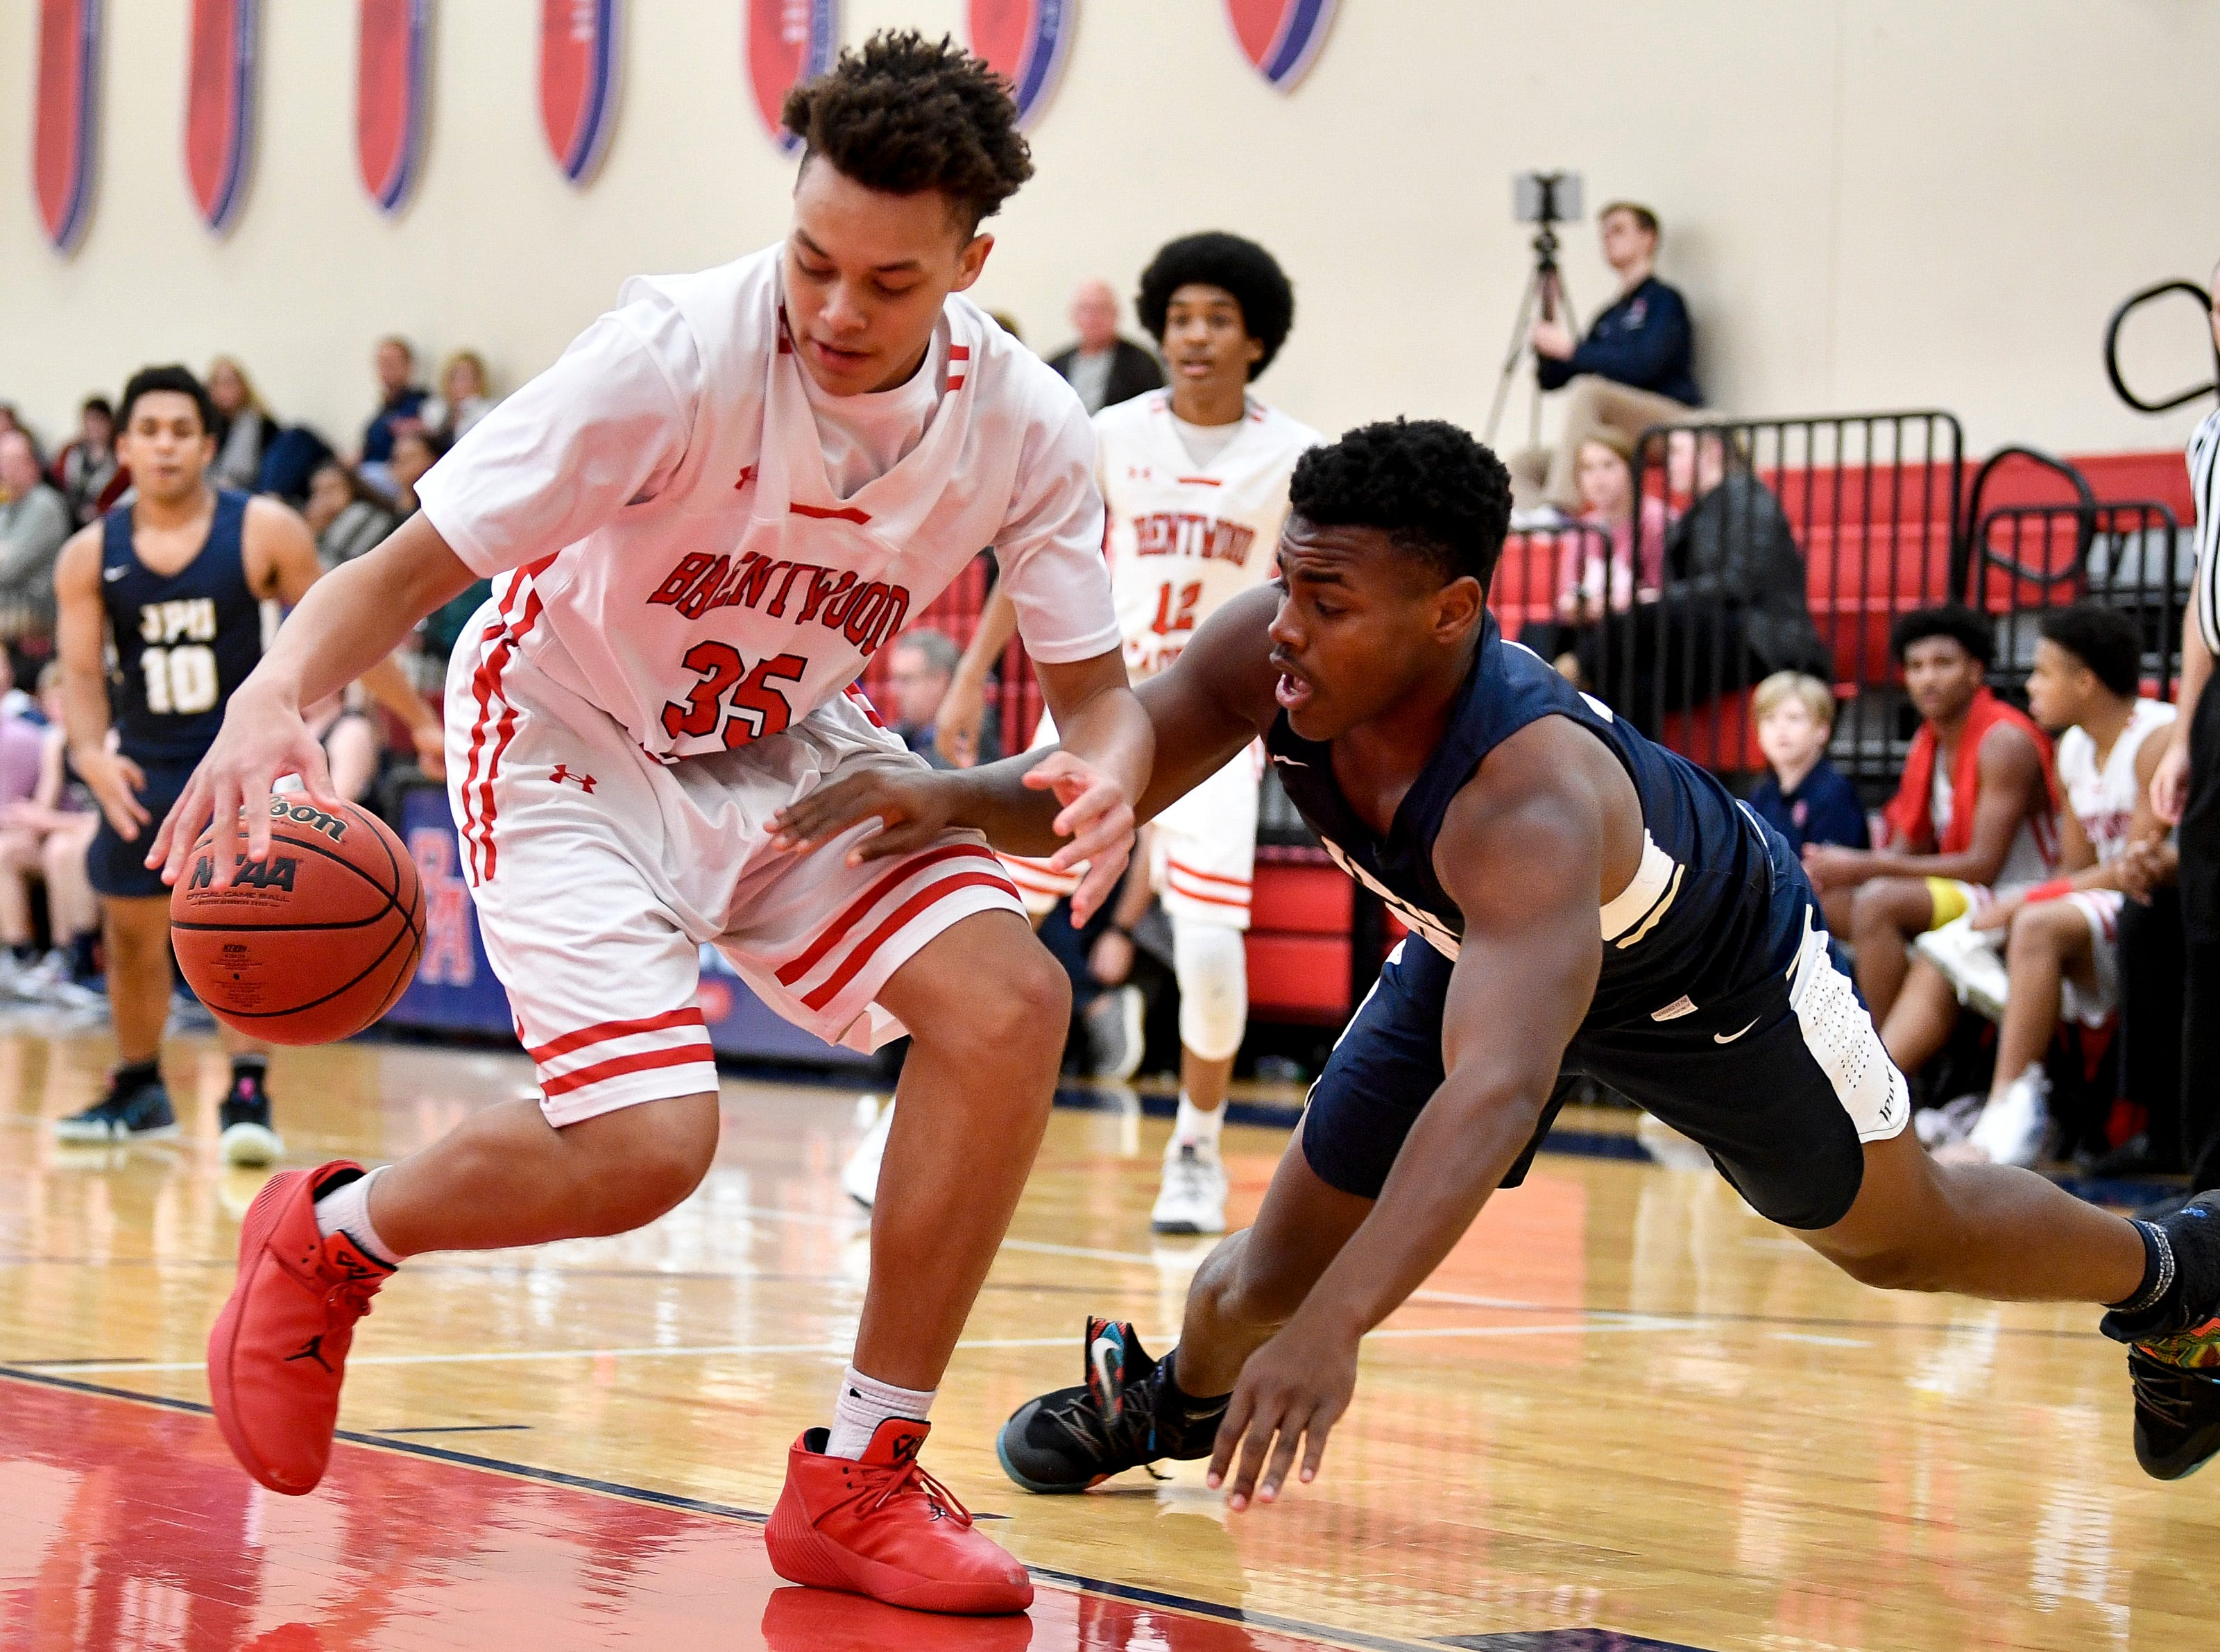 Brentwood Academy's DJ Senter (35) battles Pope John Paul II's Jay Wright (0) during the second half at Brentwood Academy in Brentwood, Tenn., Friday, Jan. 4, 2019.